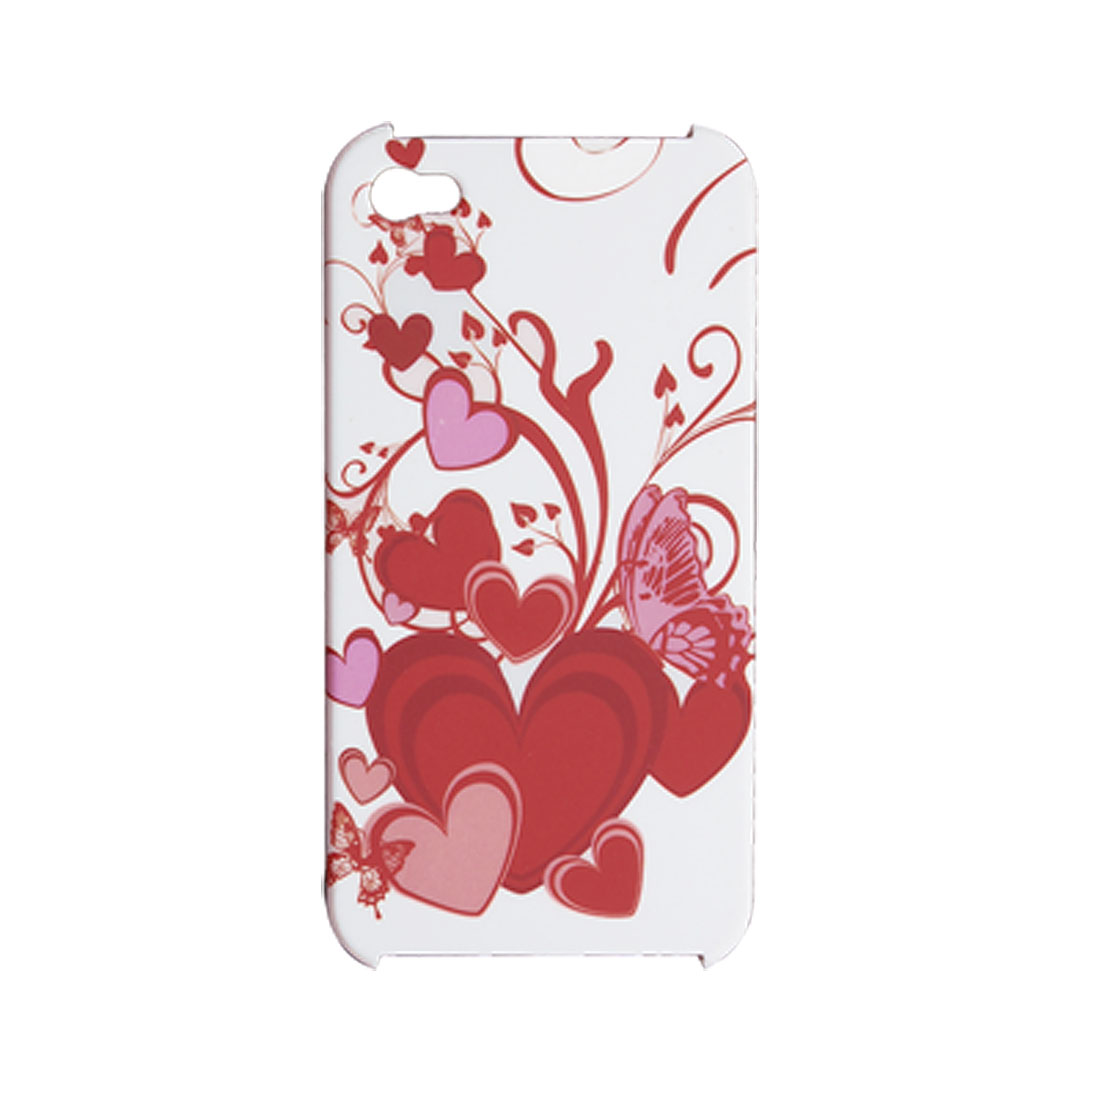 Red Heart Pattern Rubberized Hard Plastic Case for iPhone 4 4G